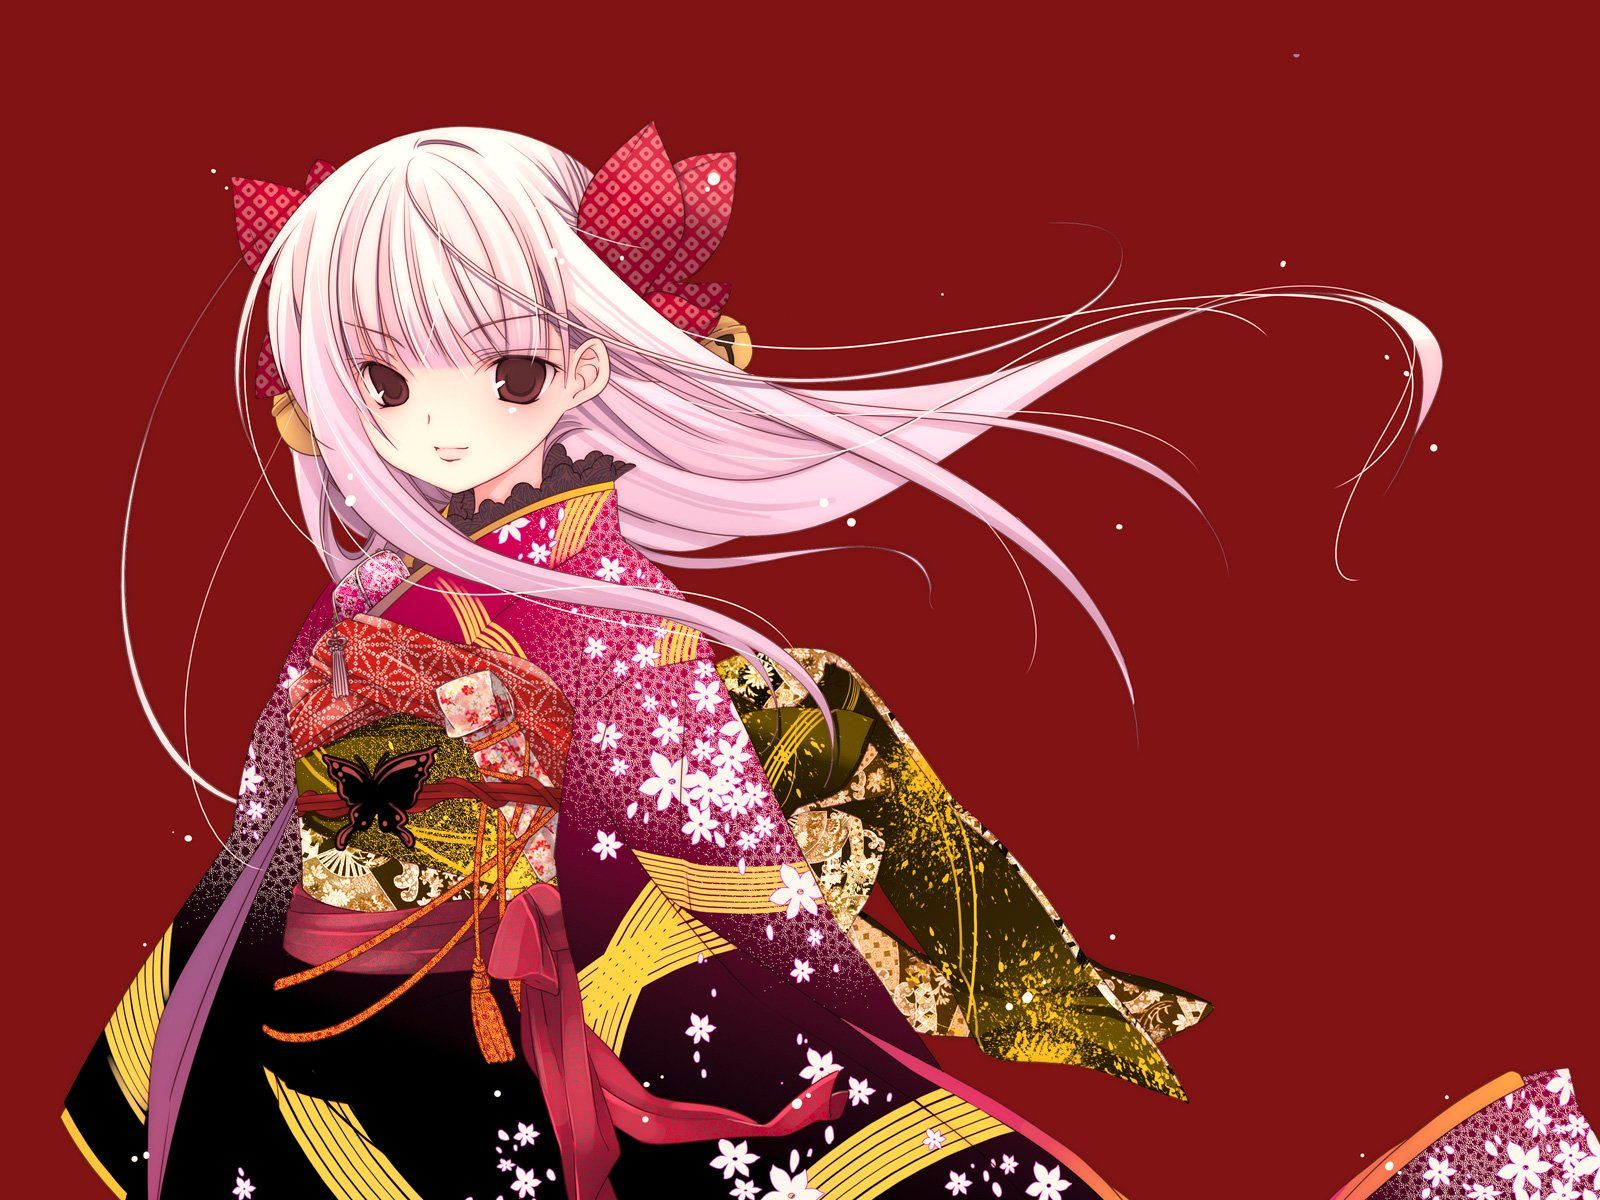 Anime Japanese Wind Girl Dress Wind Long Hair Kimono Red